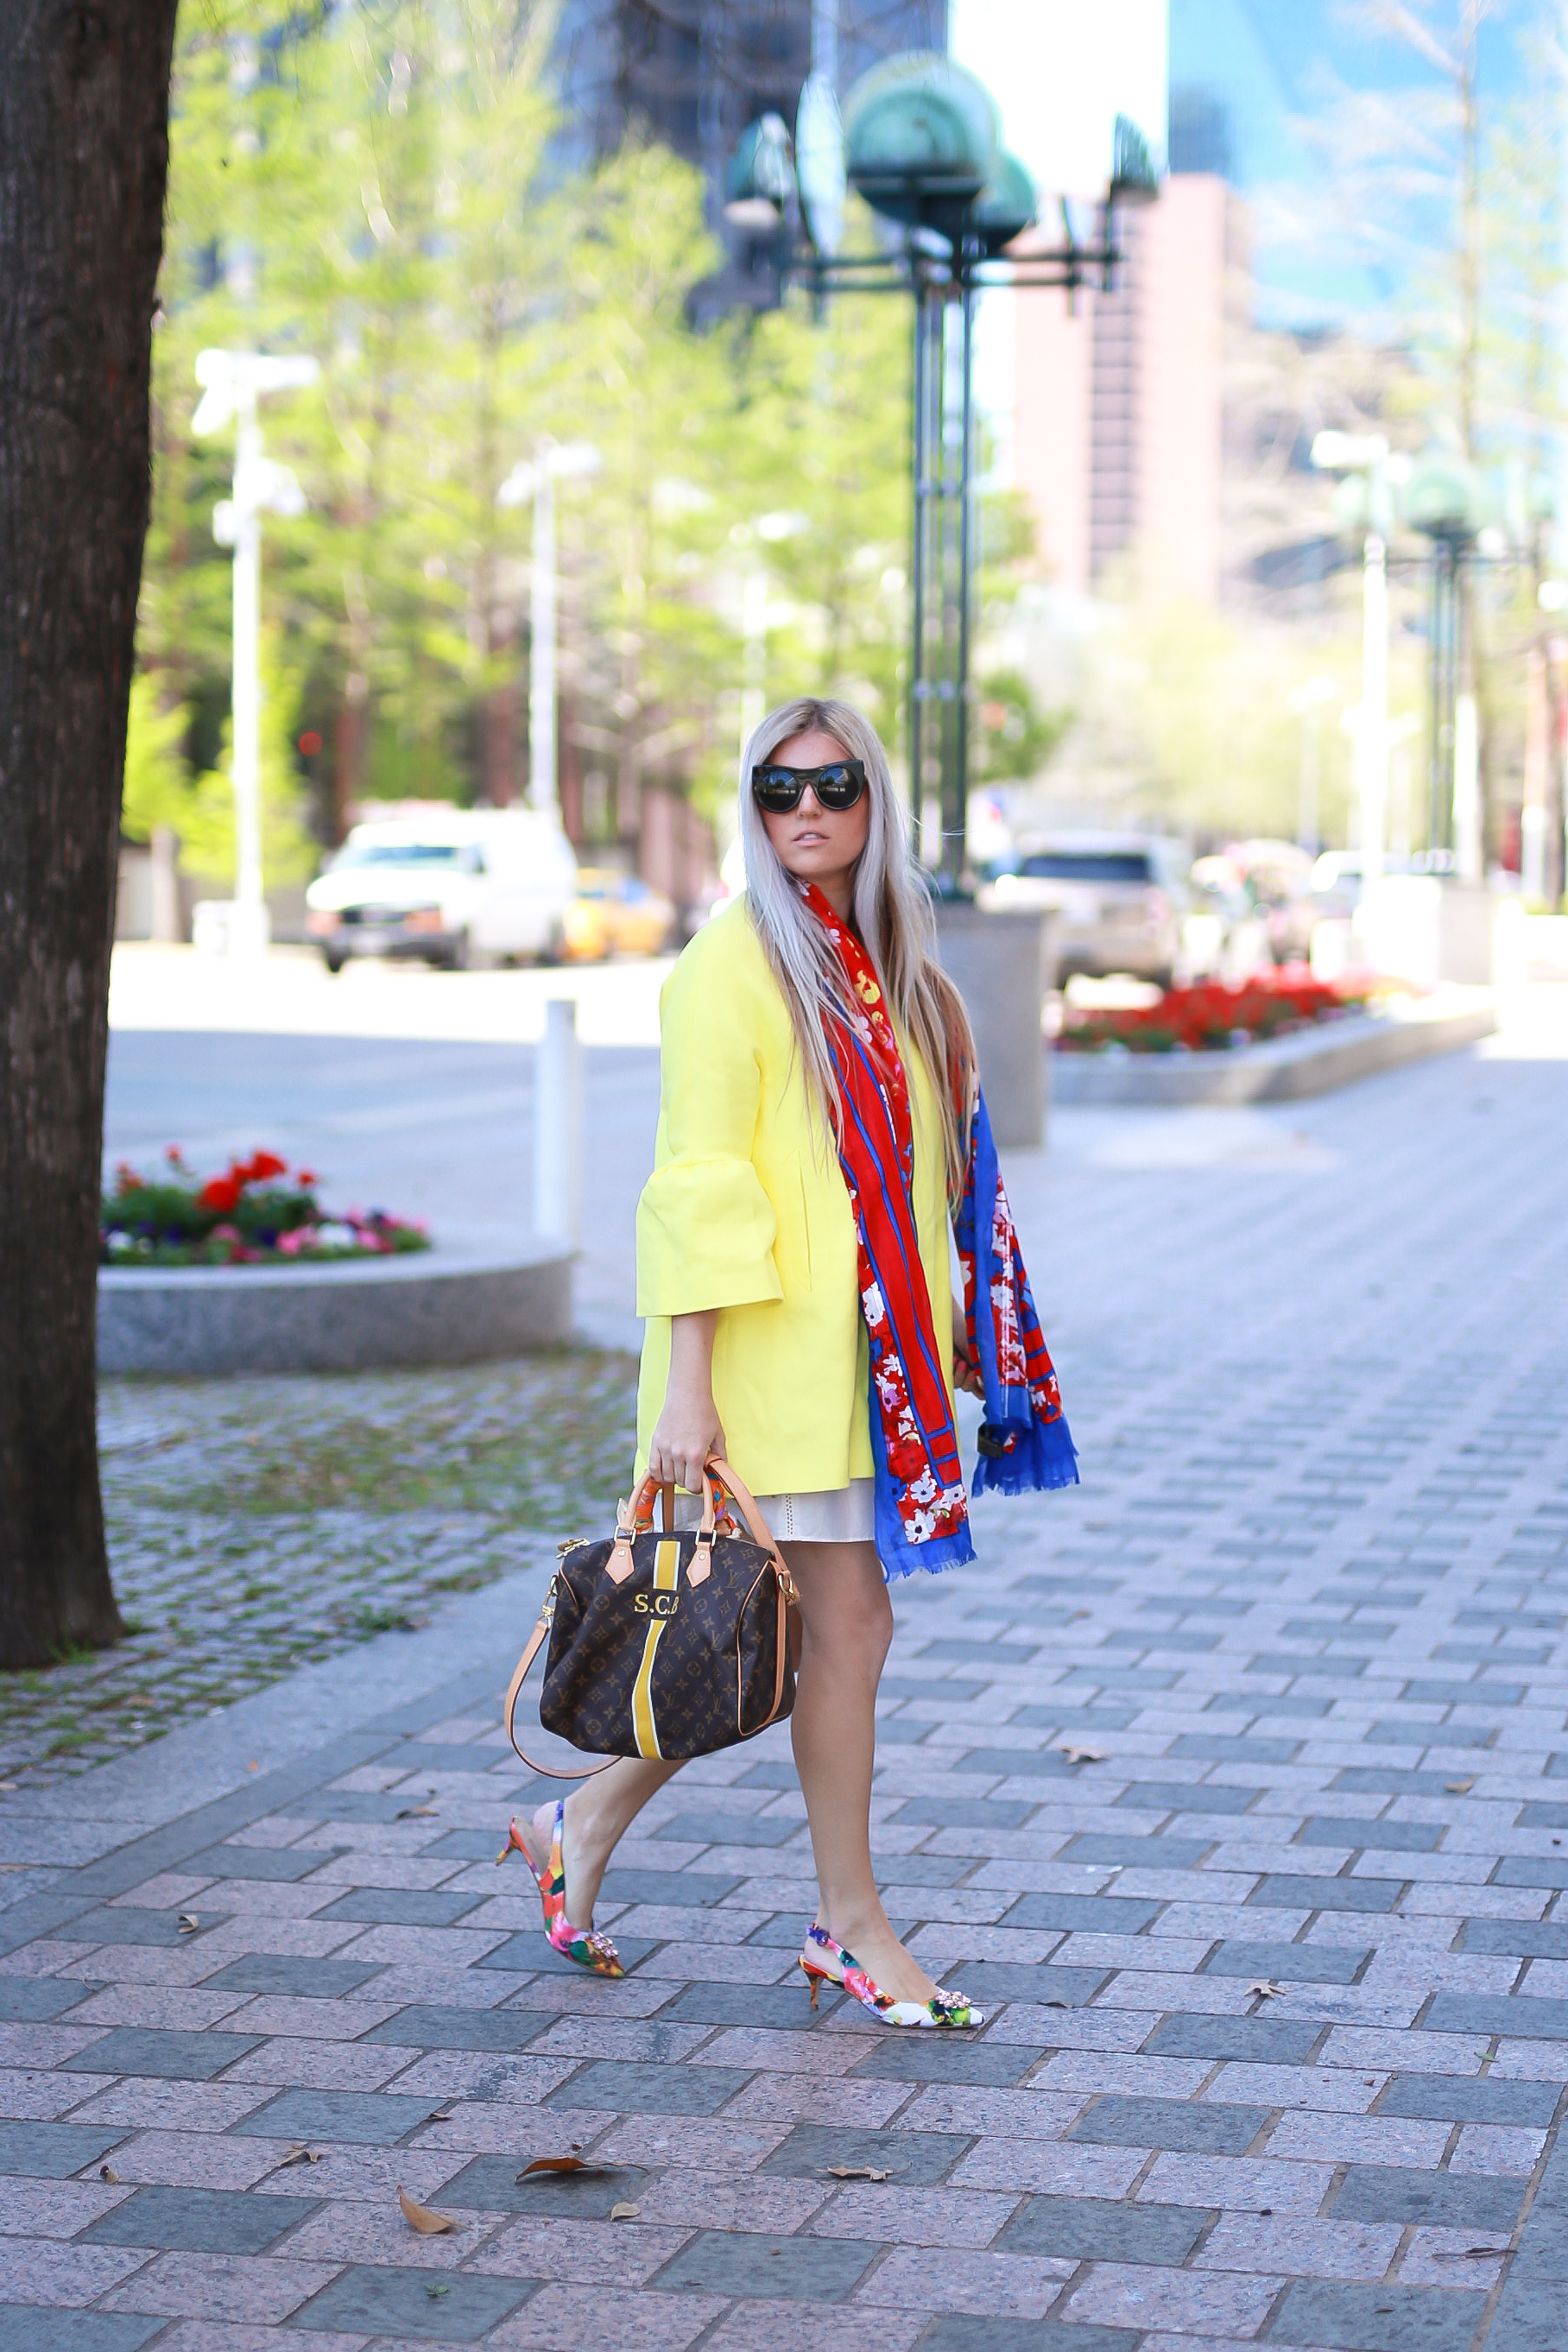 Stephany Bowman Editor of Stephany's Choice wearing a yellow zip up, bell sleeve jacket and printed red scarf from ZARA, black cat eye sunglasses from Louis Vuitton, and personalized Speedy bag from Louis Vuitton